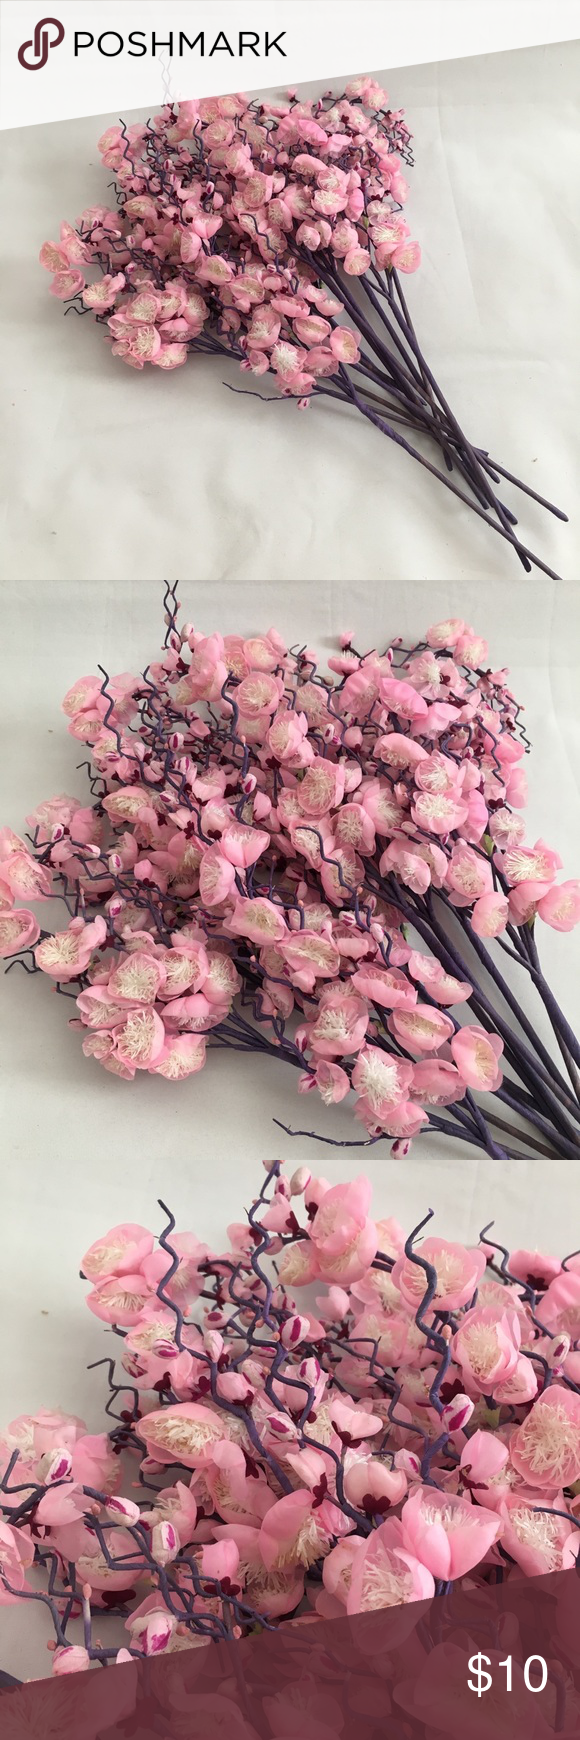 12pcs Pink Cherry Blossoms Flower Cherry Blossom Flowers Artificial Flowers Decor Artificial Flowers